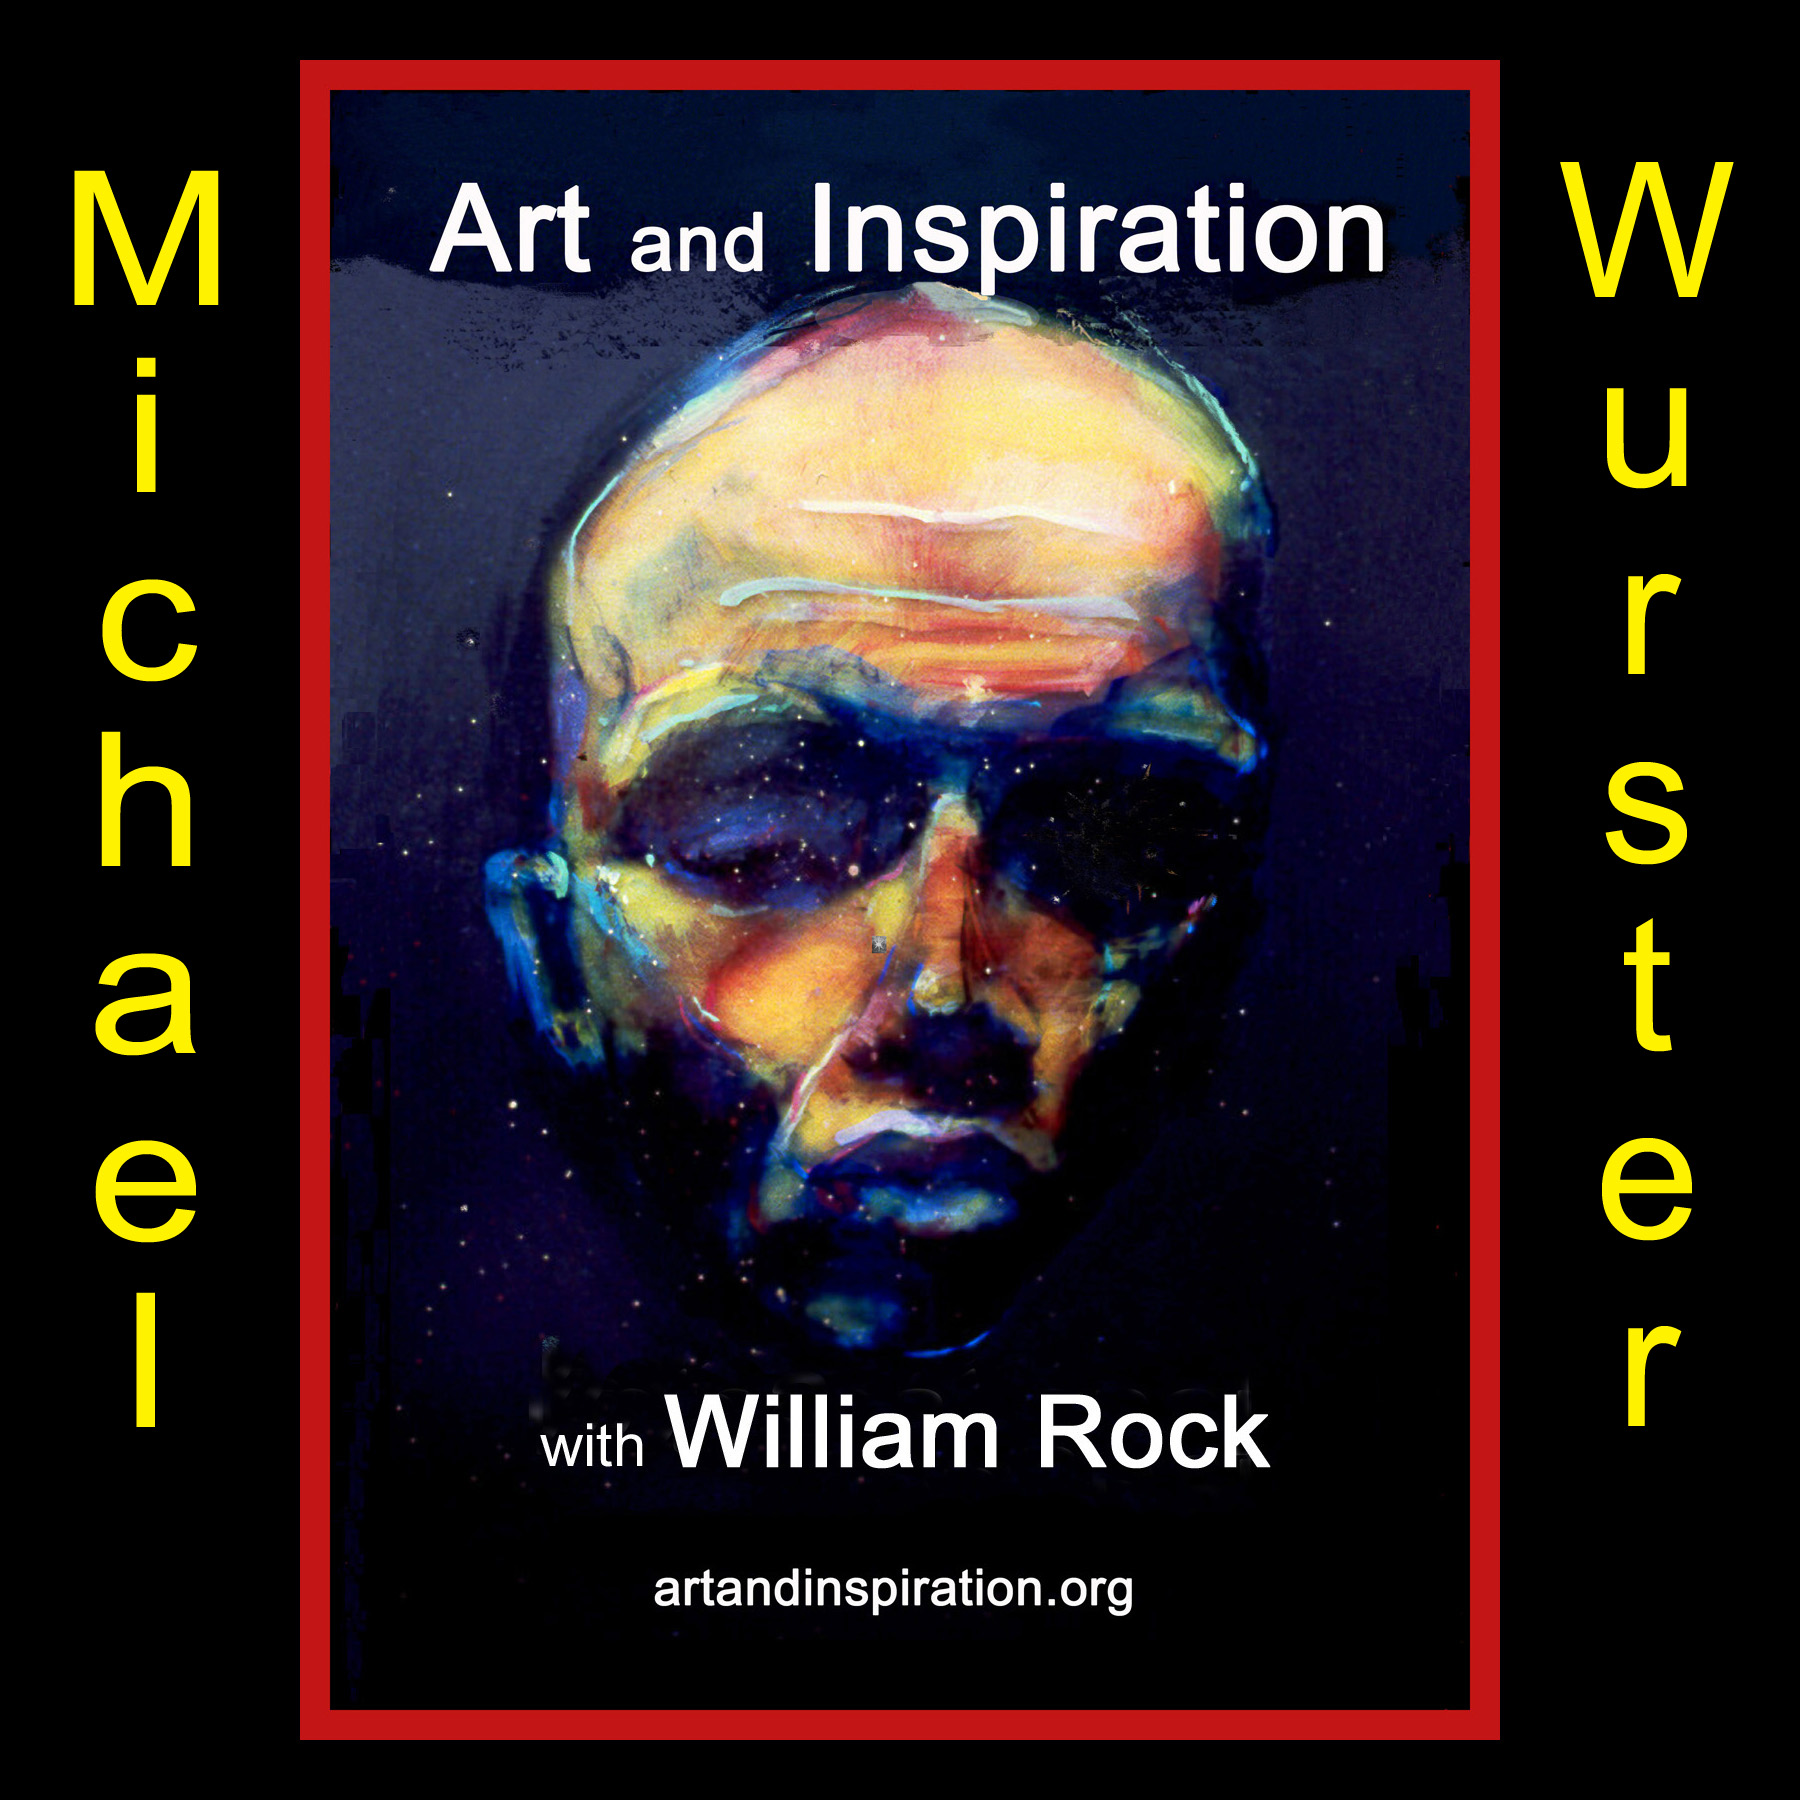 Michael Wurster on Art and Inspiration with William Rock